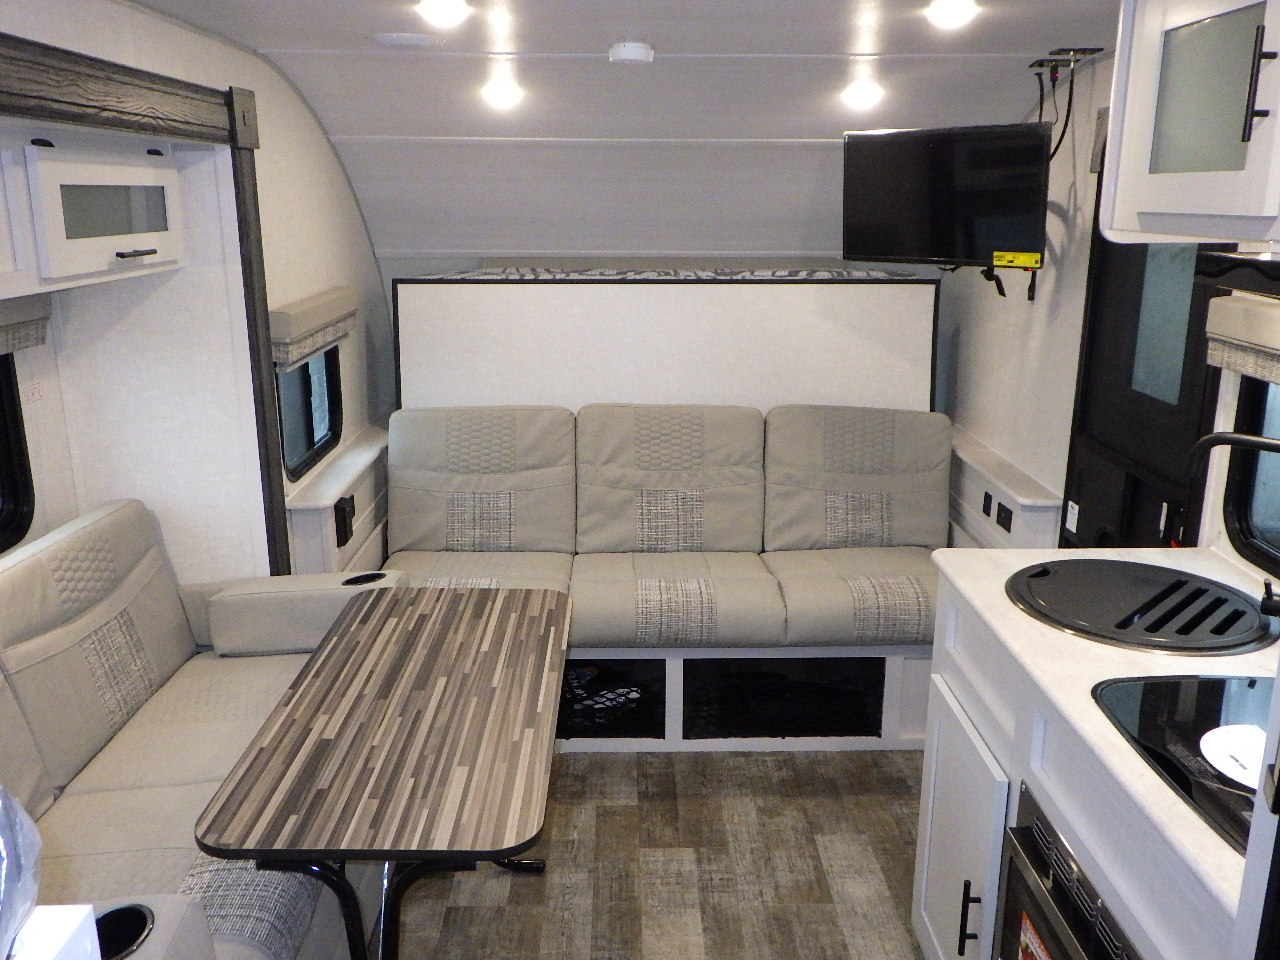 2021 FOREST RIVER R POD 193 Travel Trailers for Sale (66387)